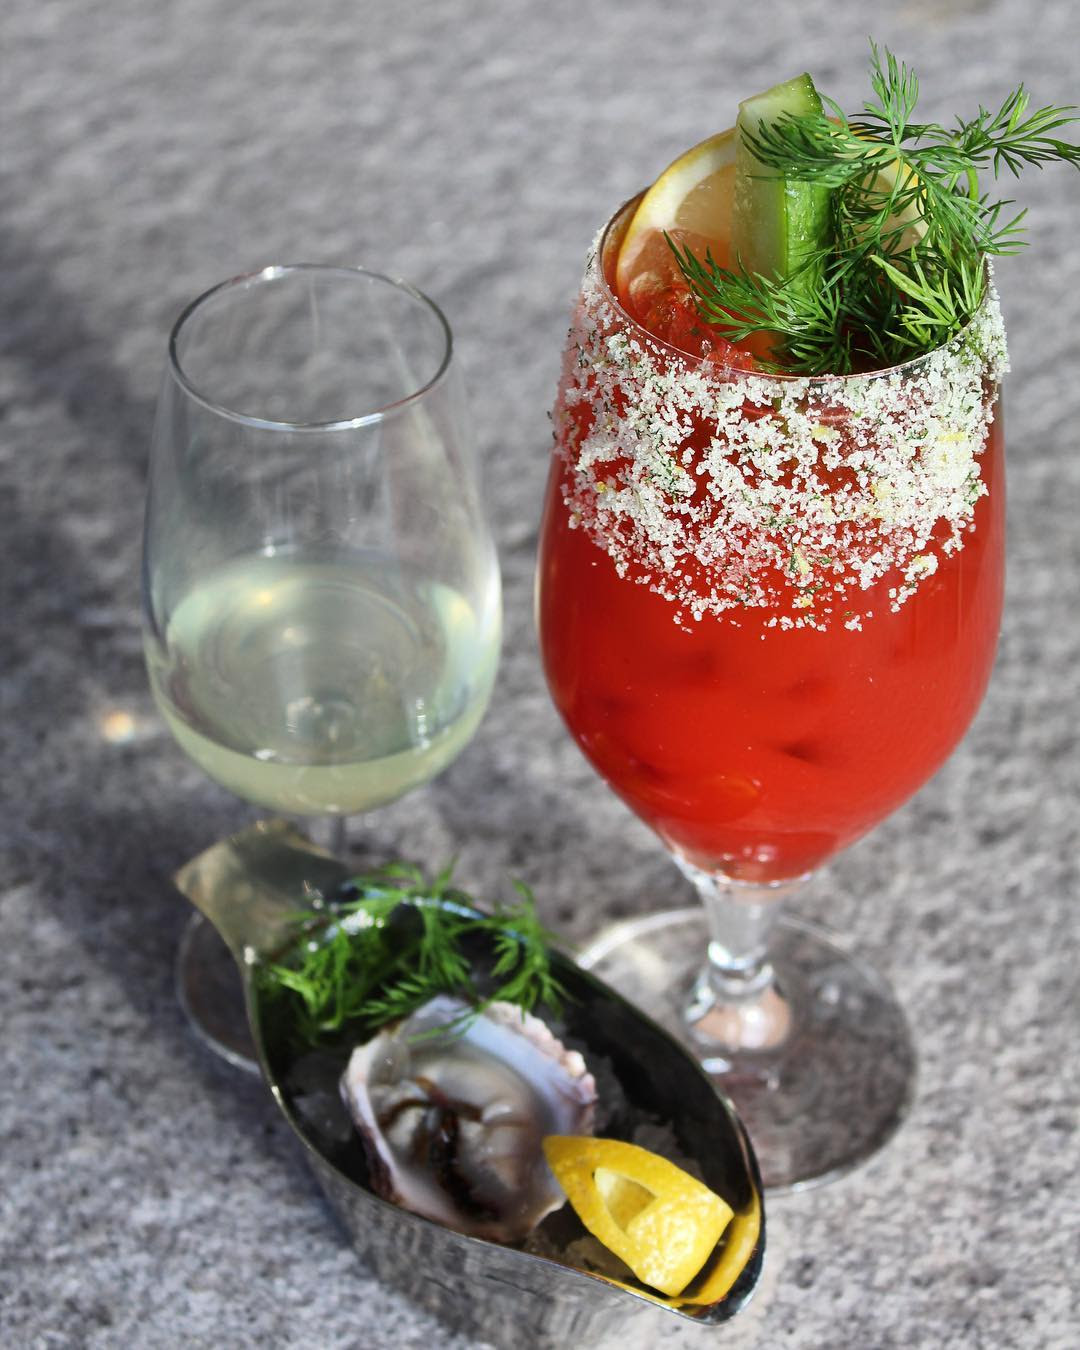 SIP AND CELEBRATE CAESAR'S 50TH BIRTHDAY AT FAIRMONT HOTELS IN BC